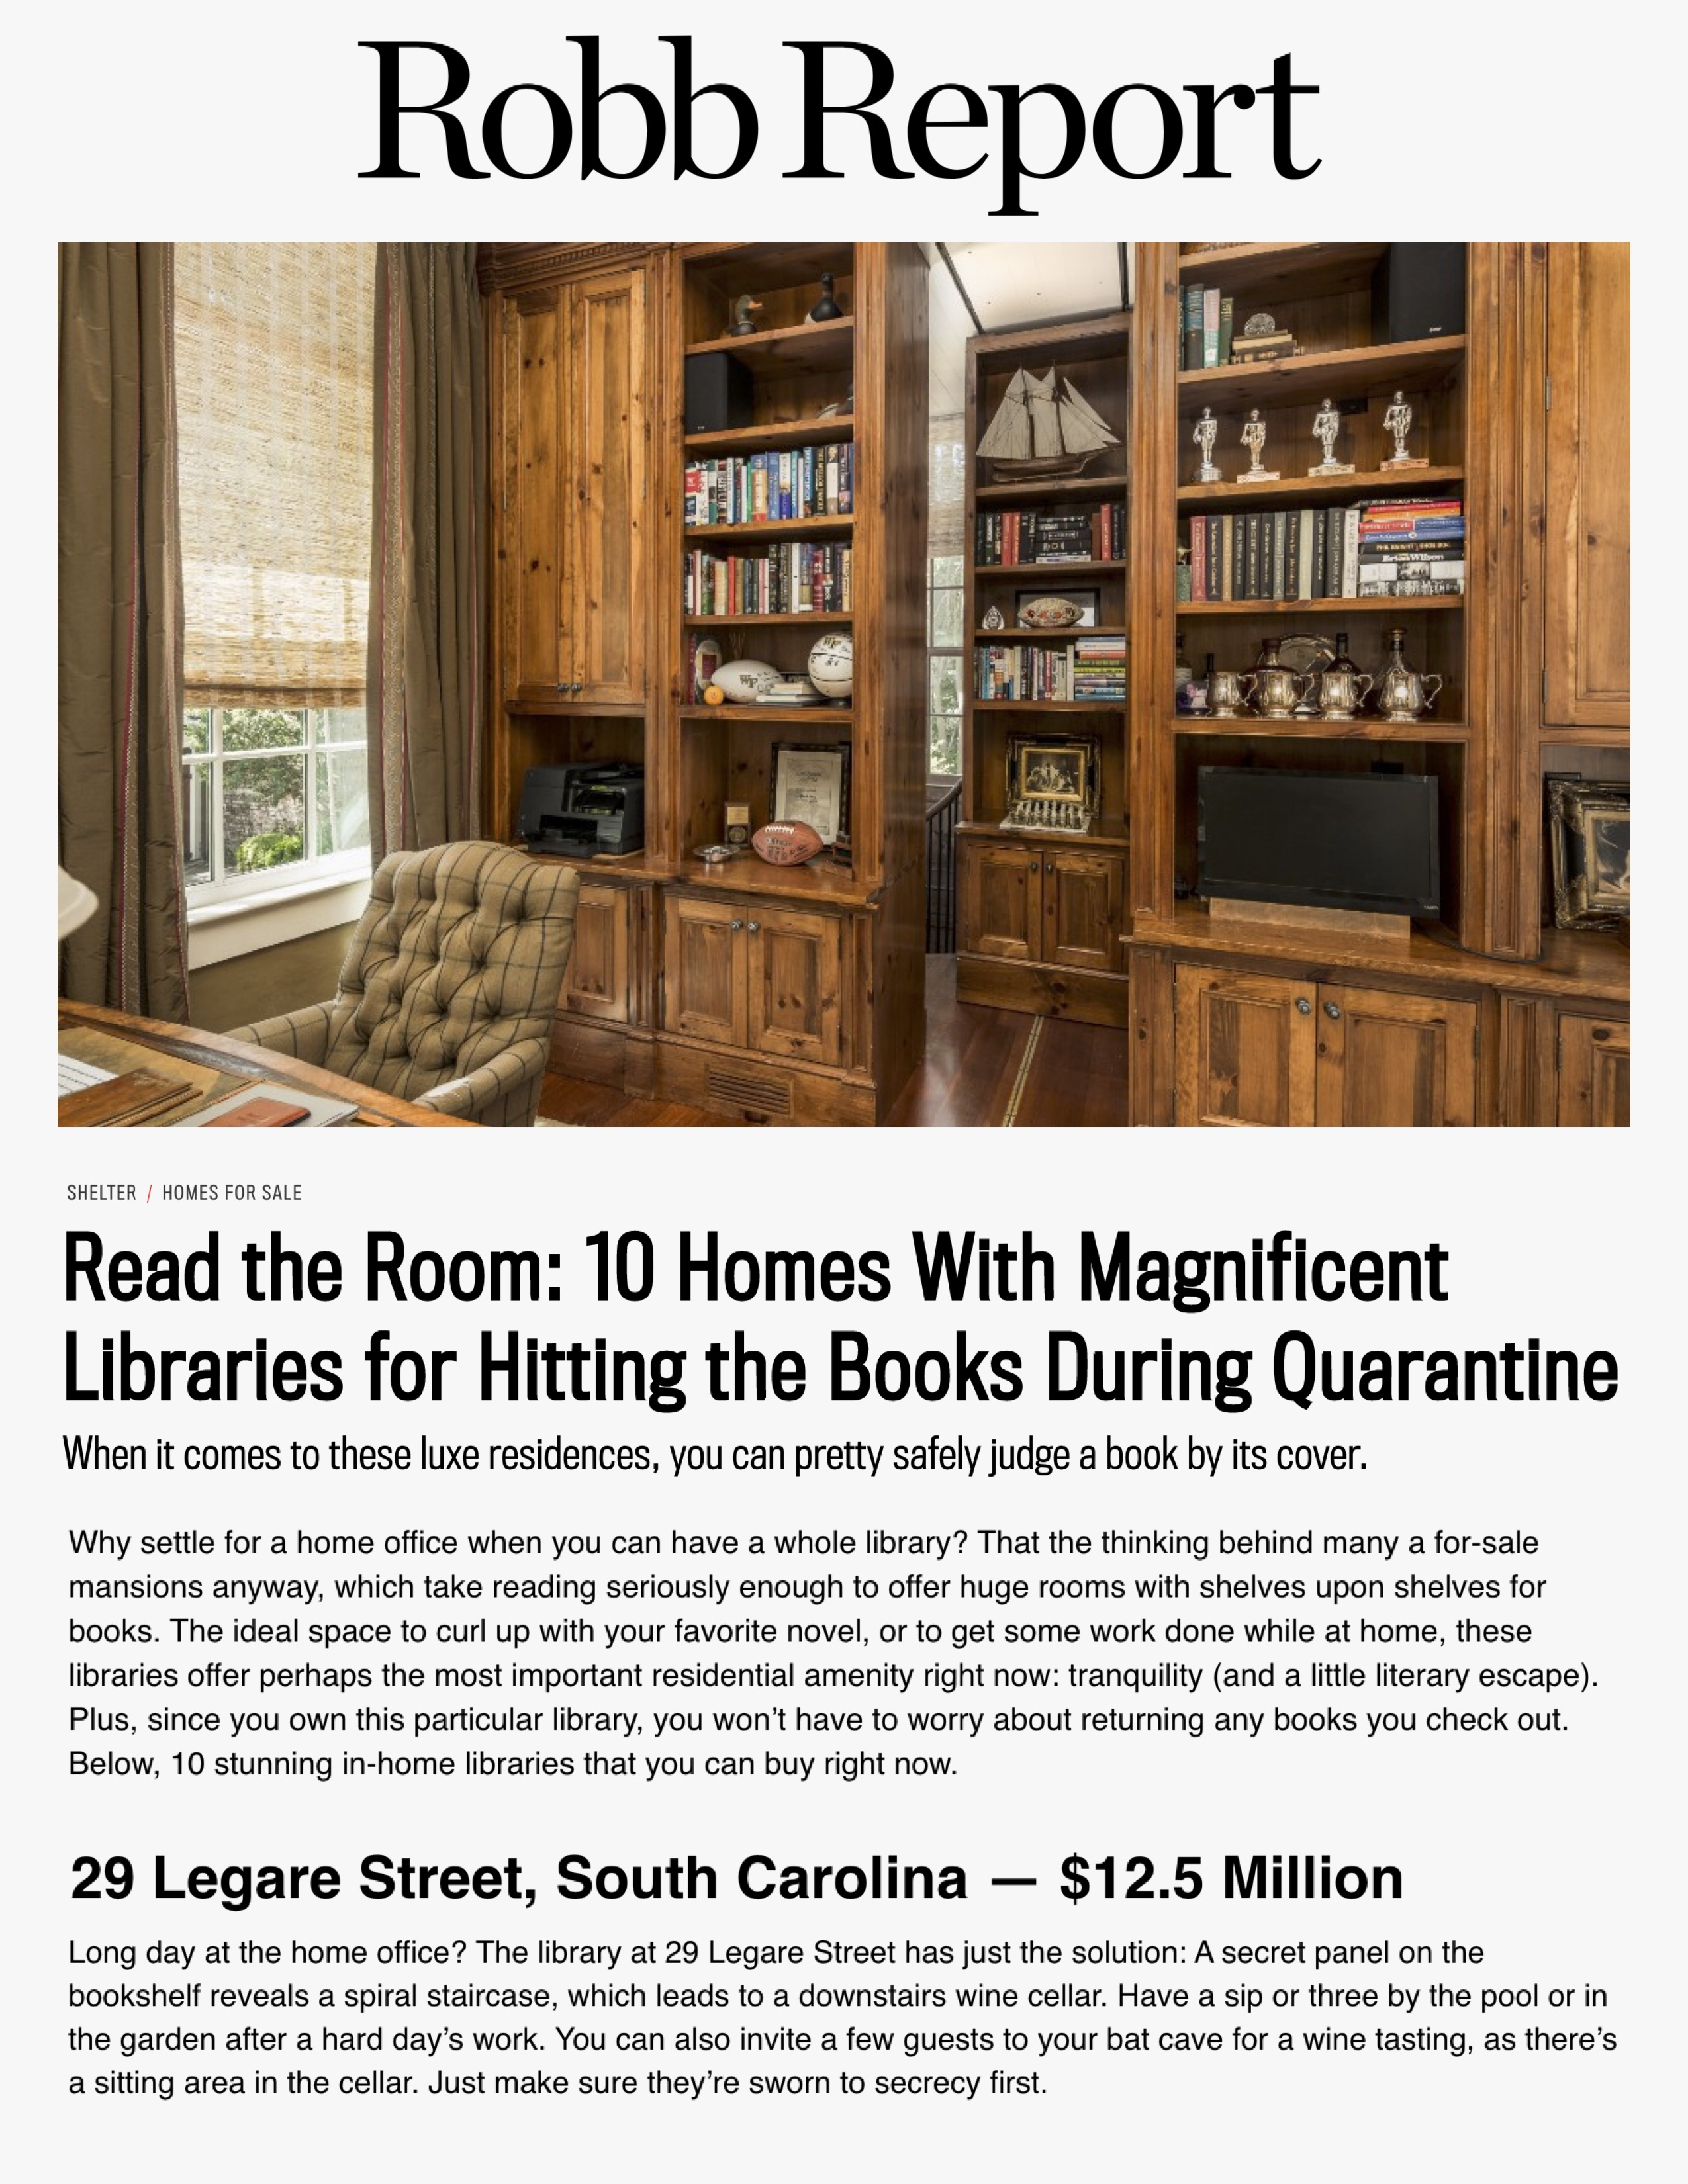 Robb Report highlights 29 Legare Street home in article